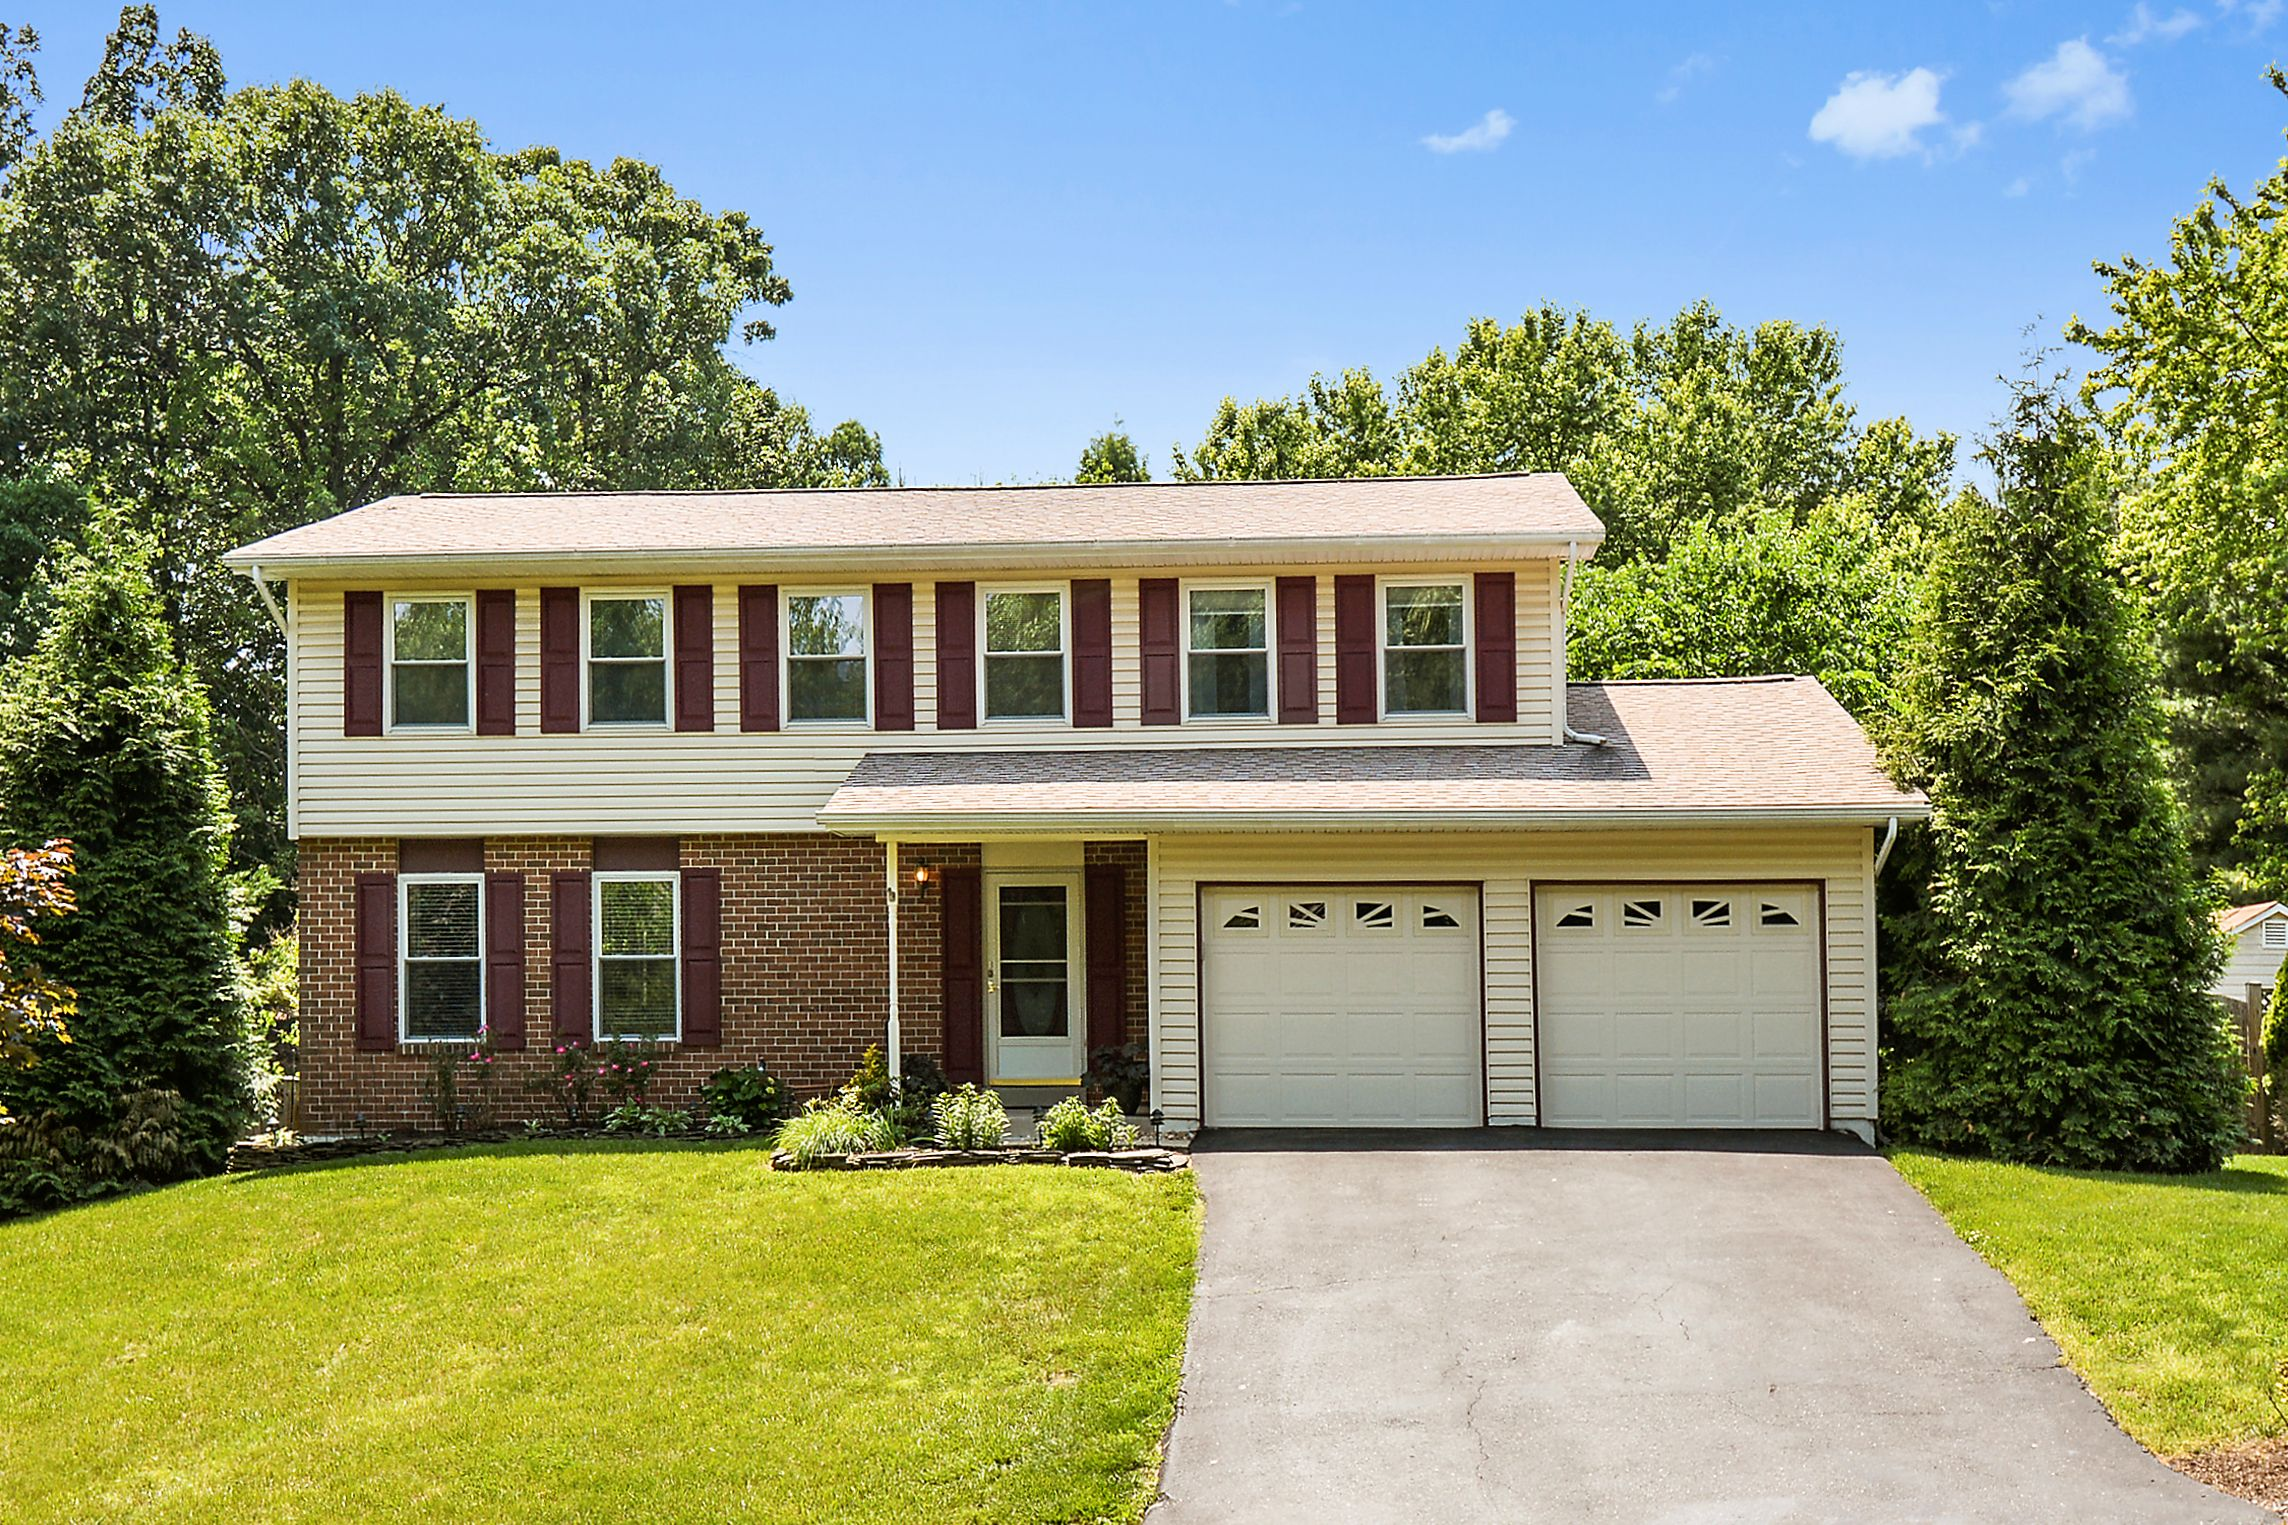 Fort Meade home for sale in Hanover MD